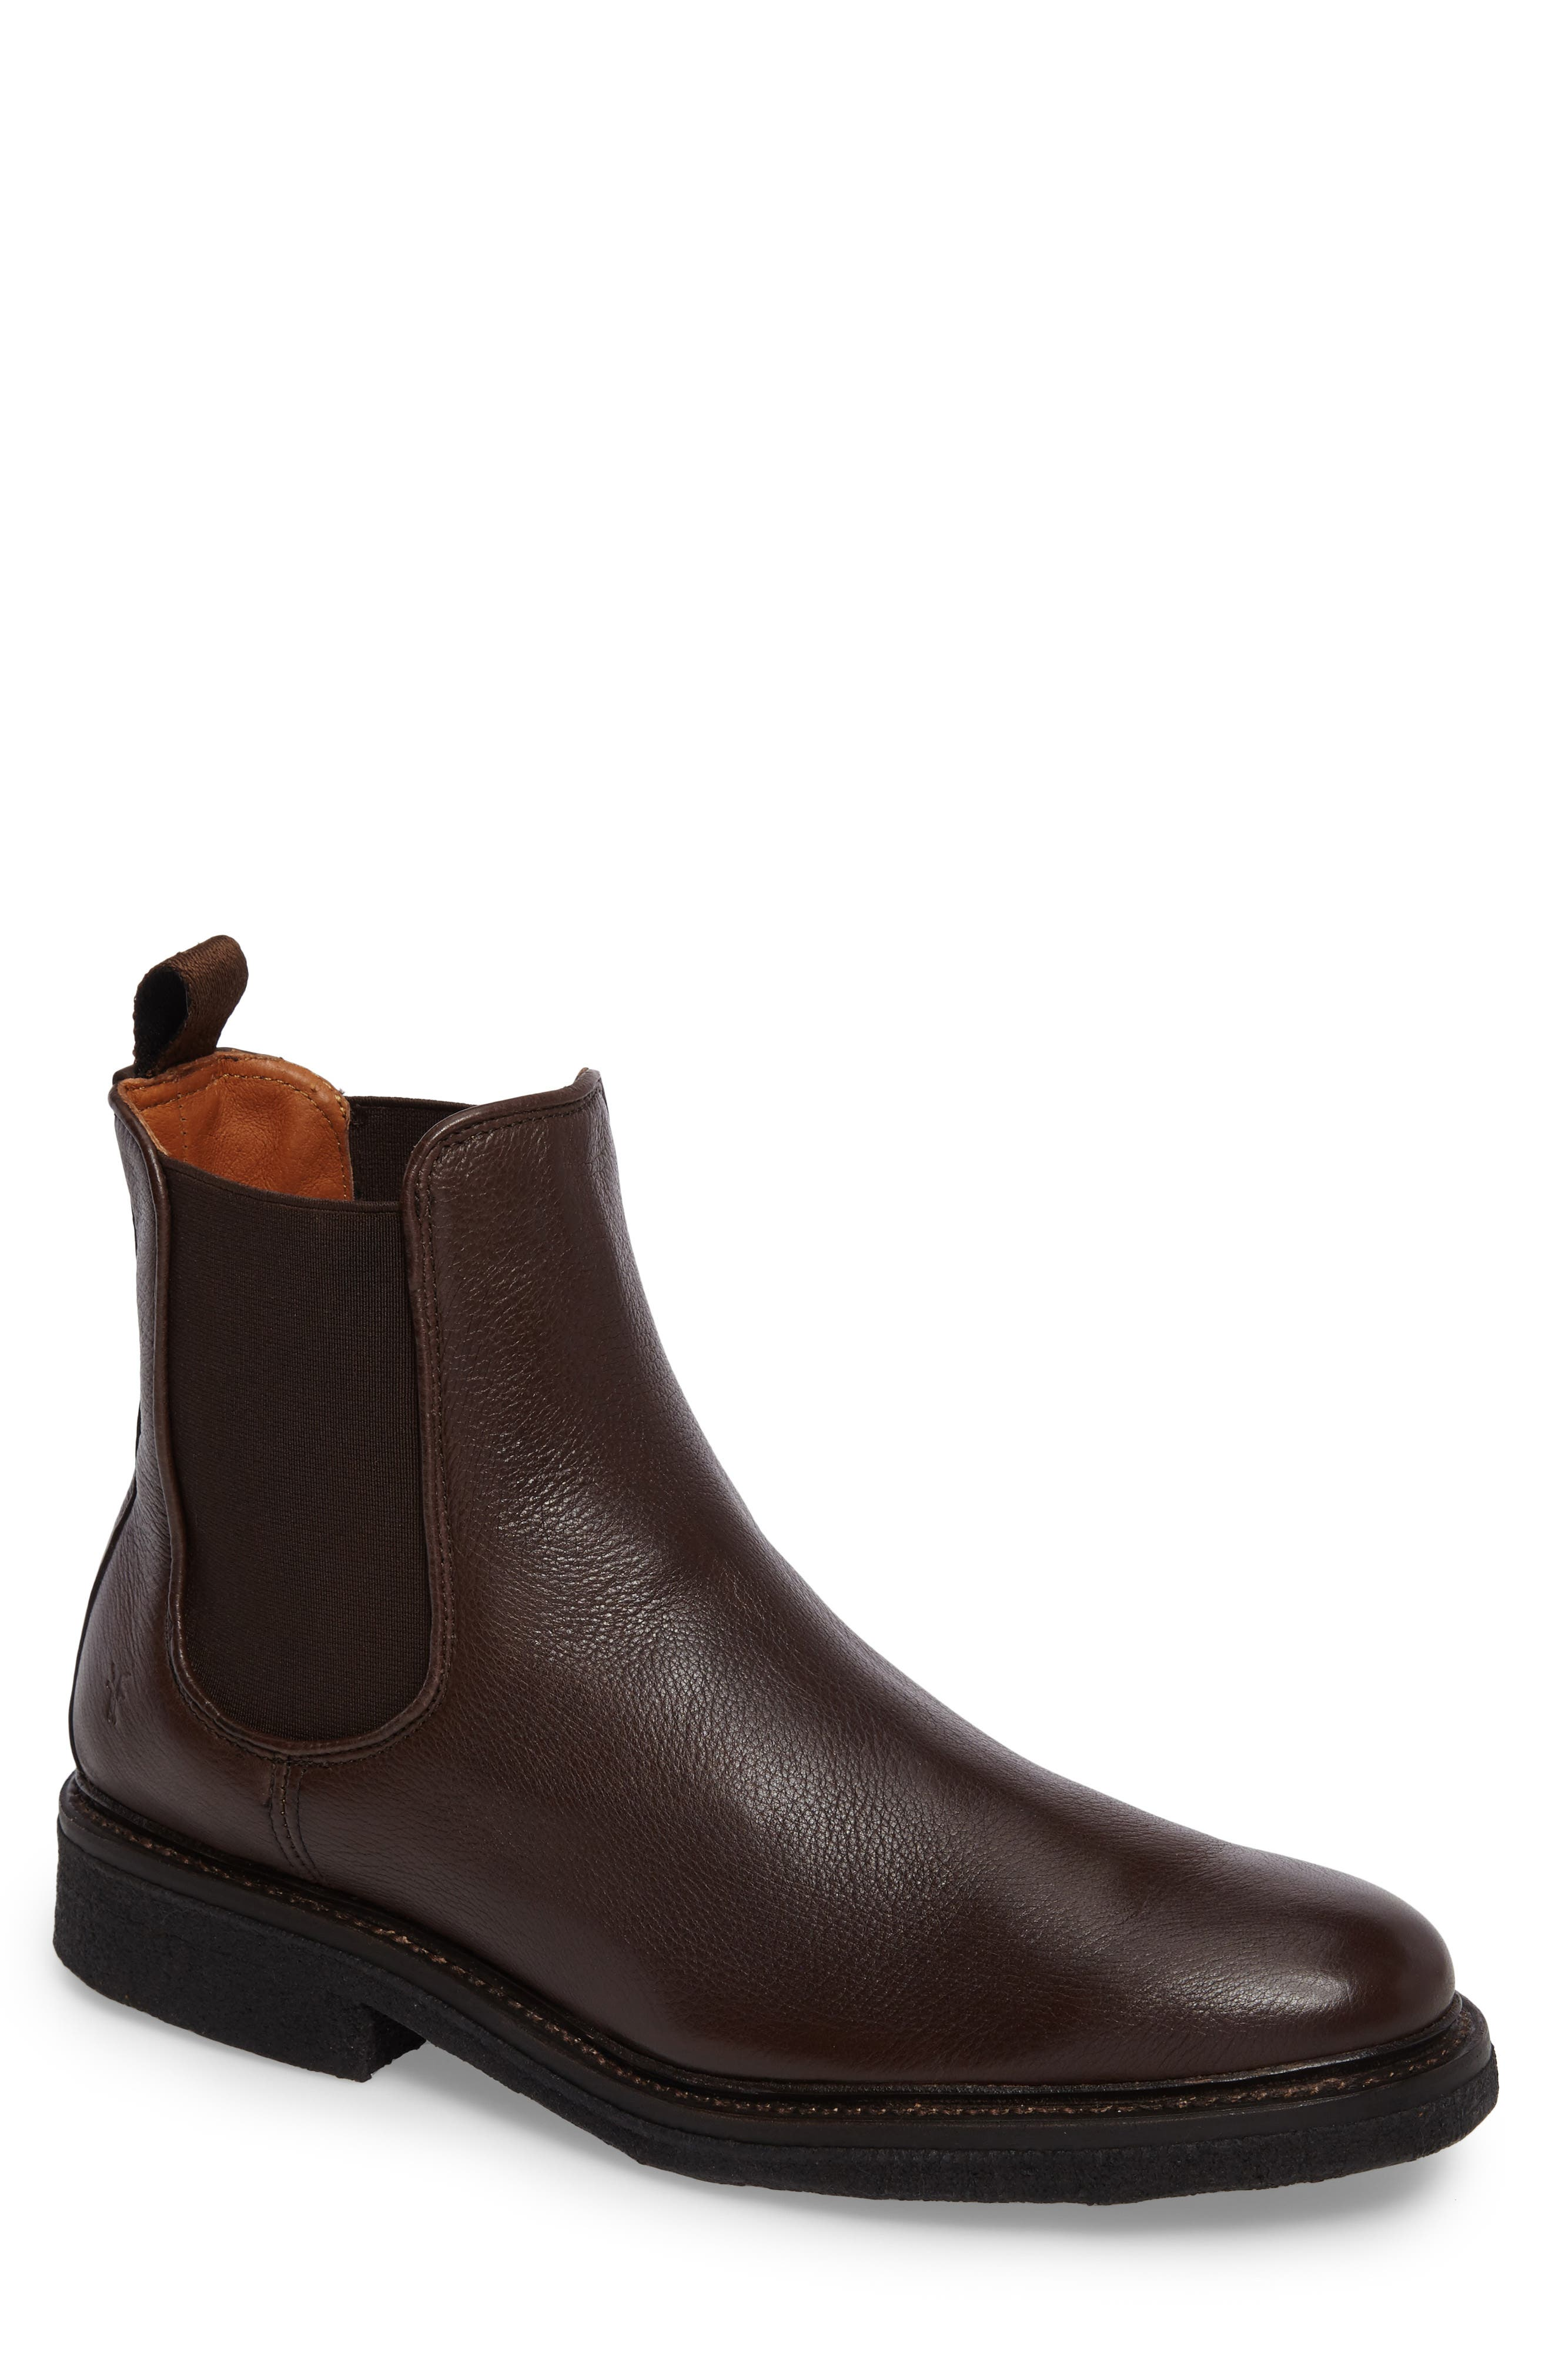 Alternate Image 1 Selected - Frye Country Chelsea Boot (Men)